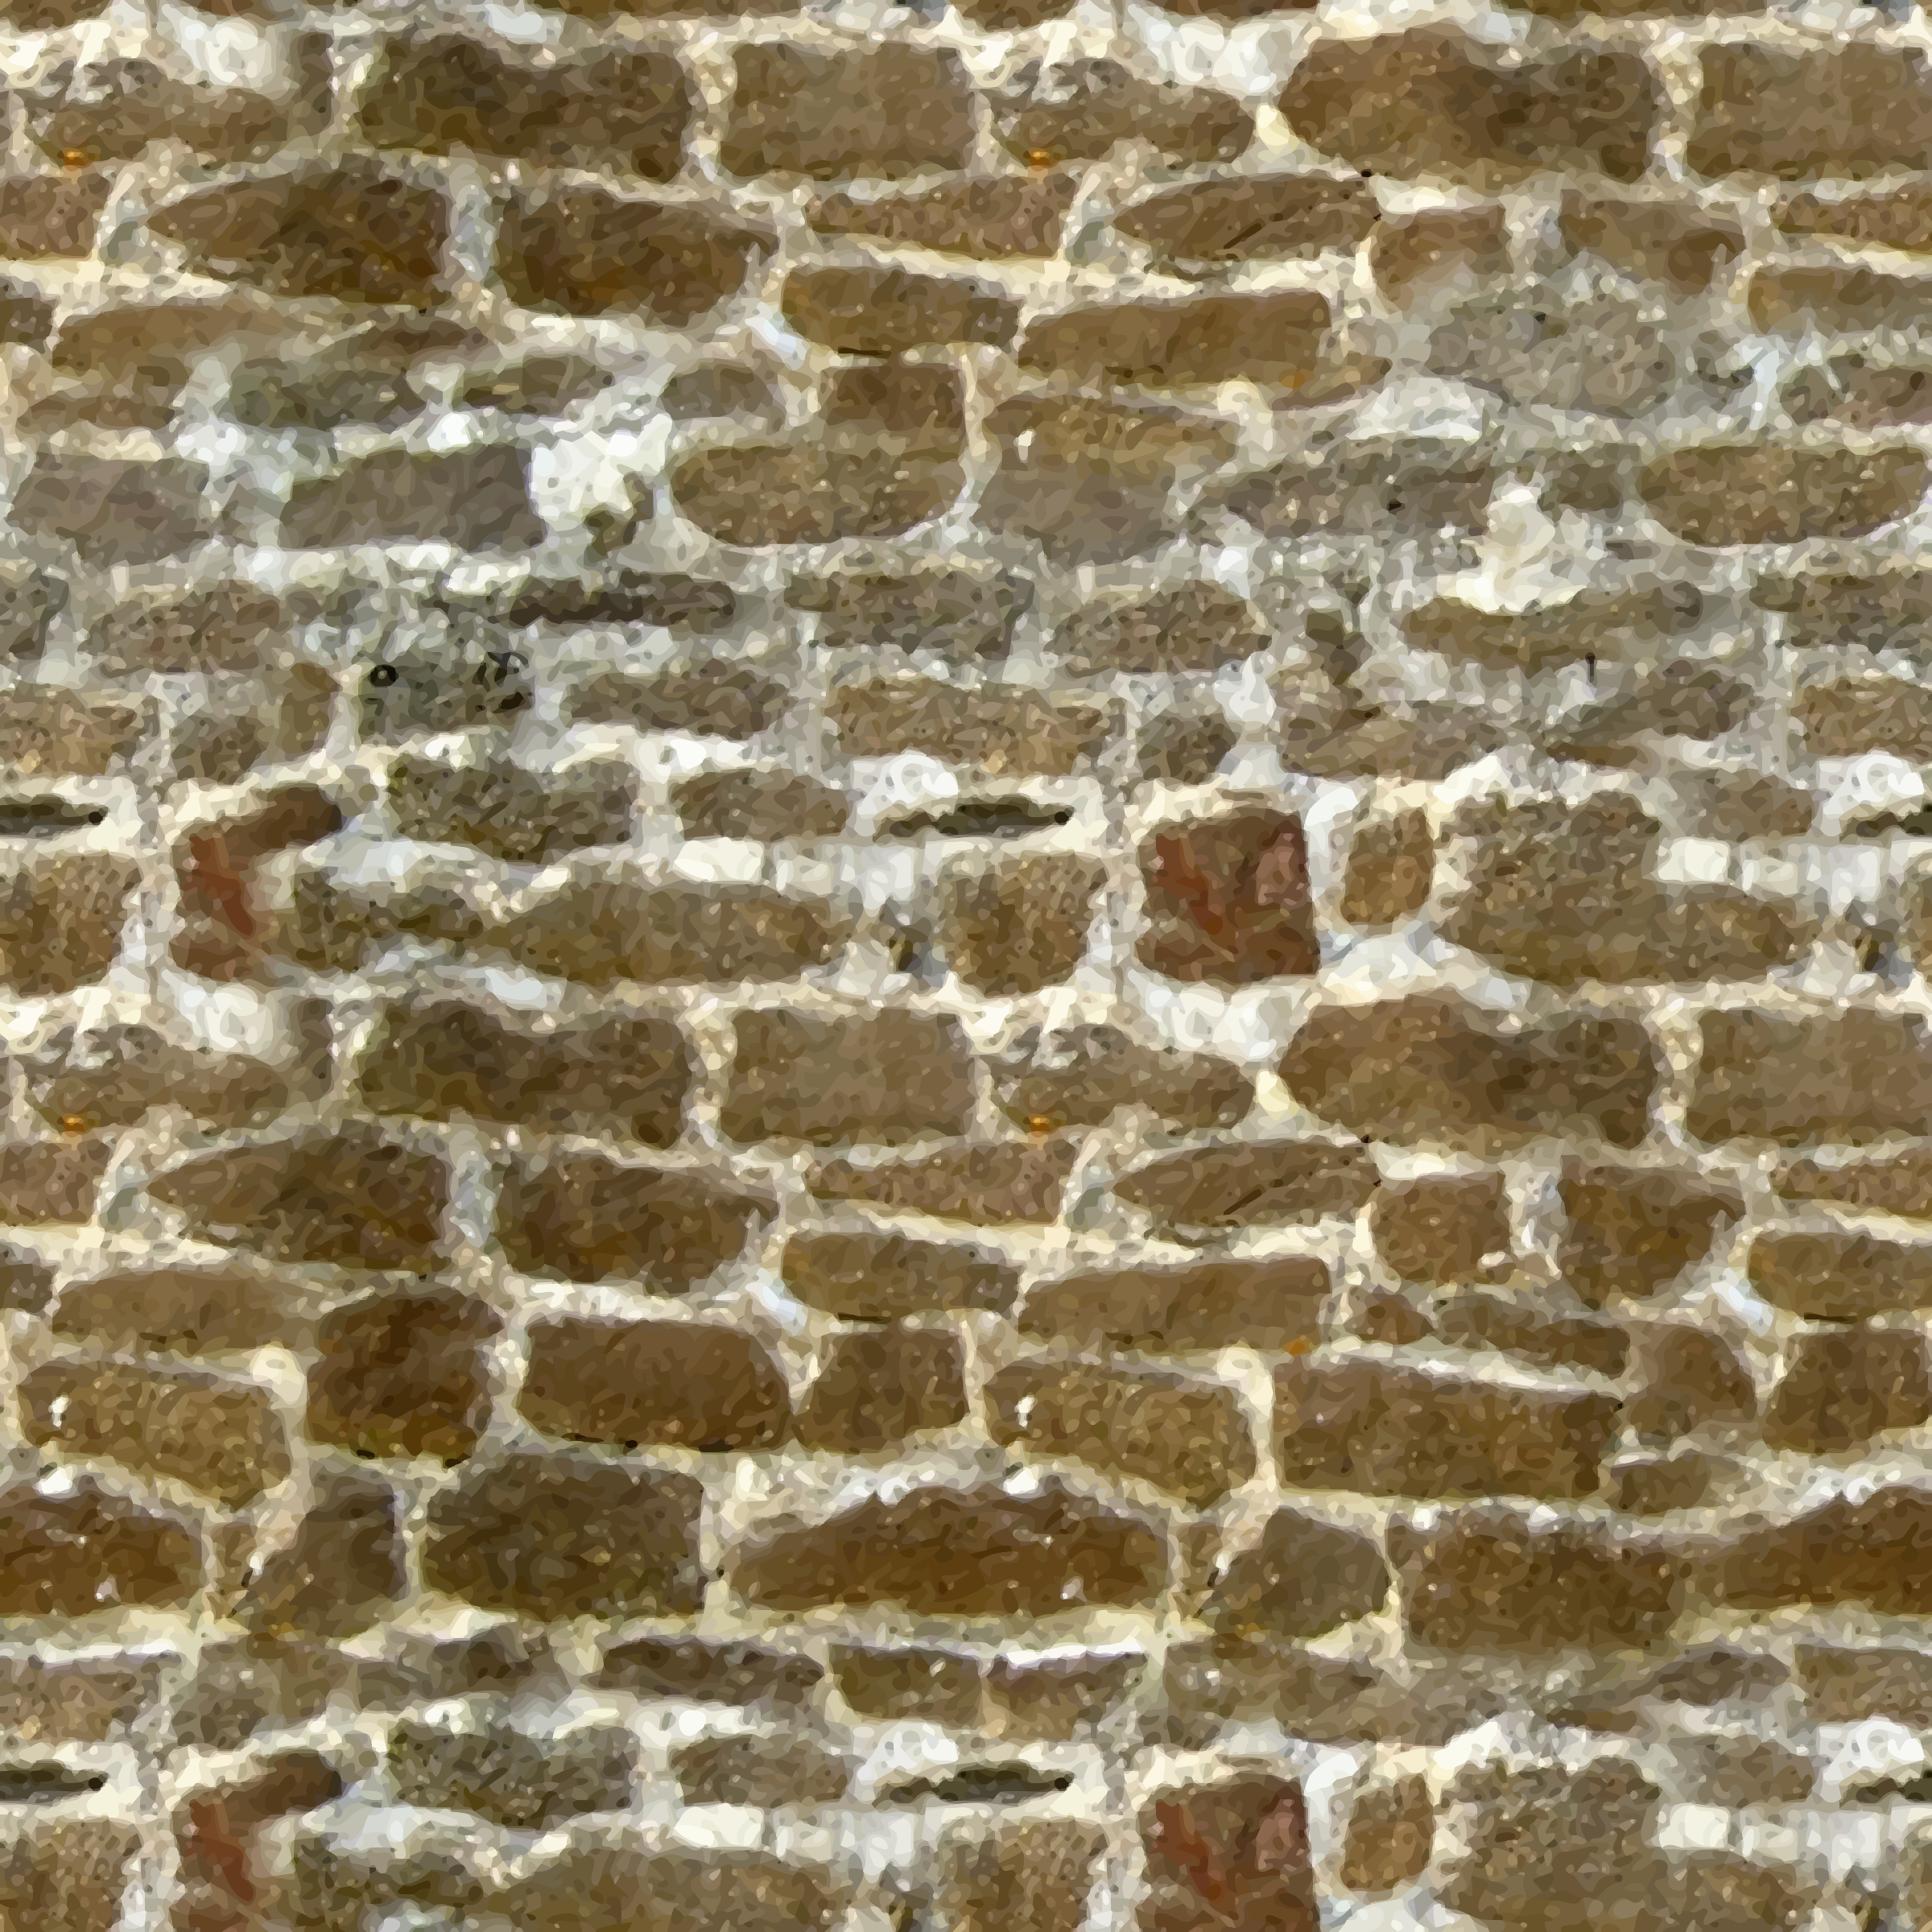 Stone wall 13 by Firkin